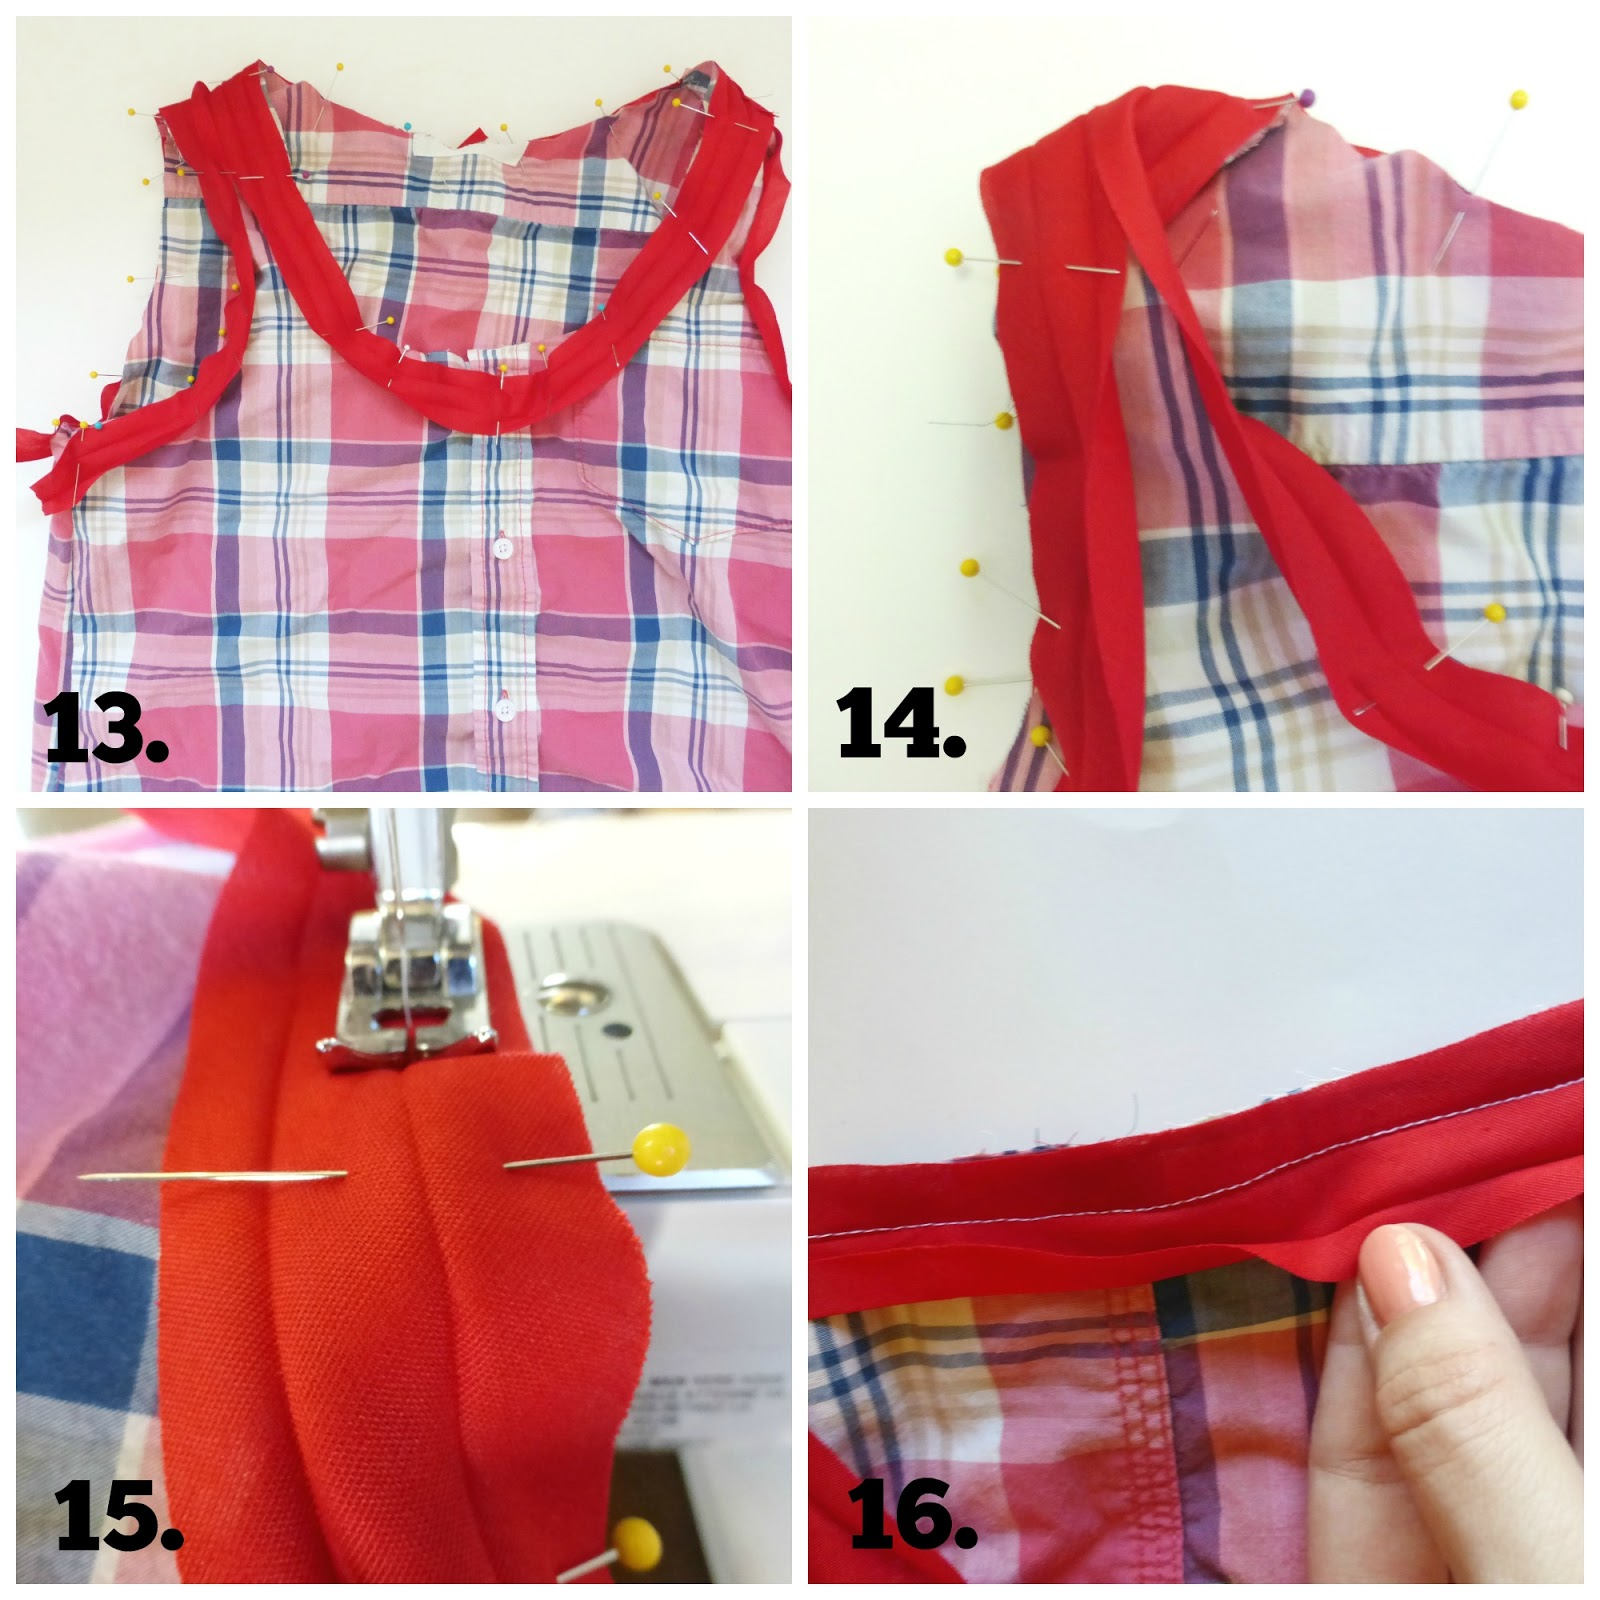 men's button down shirt to women's tank top refashion tutorial